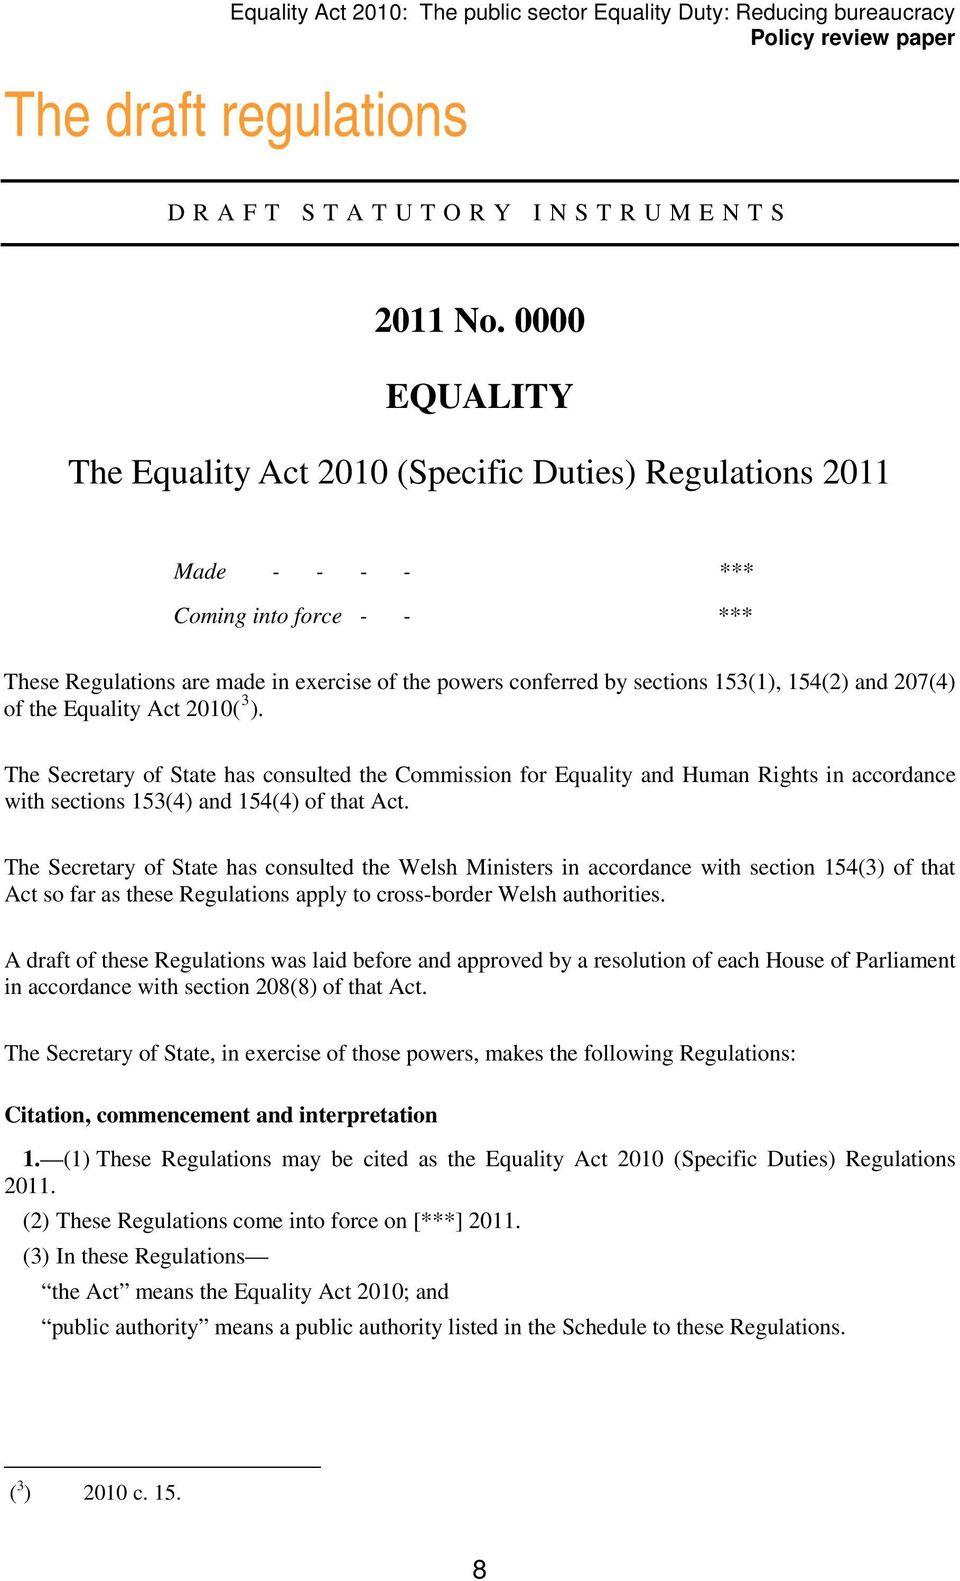 154(2) and 207(4) of the Equality Act 2010( 3 ). The Secretary of State has consulted the Commission for Equality and Human Rights in accordance with sections 153(4) and 154(4) of that Act.